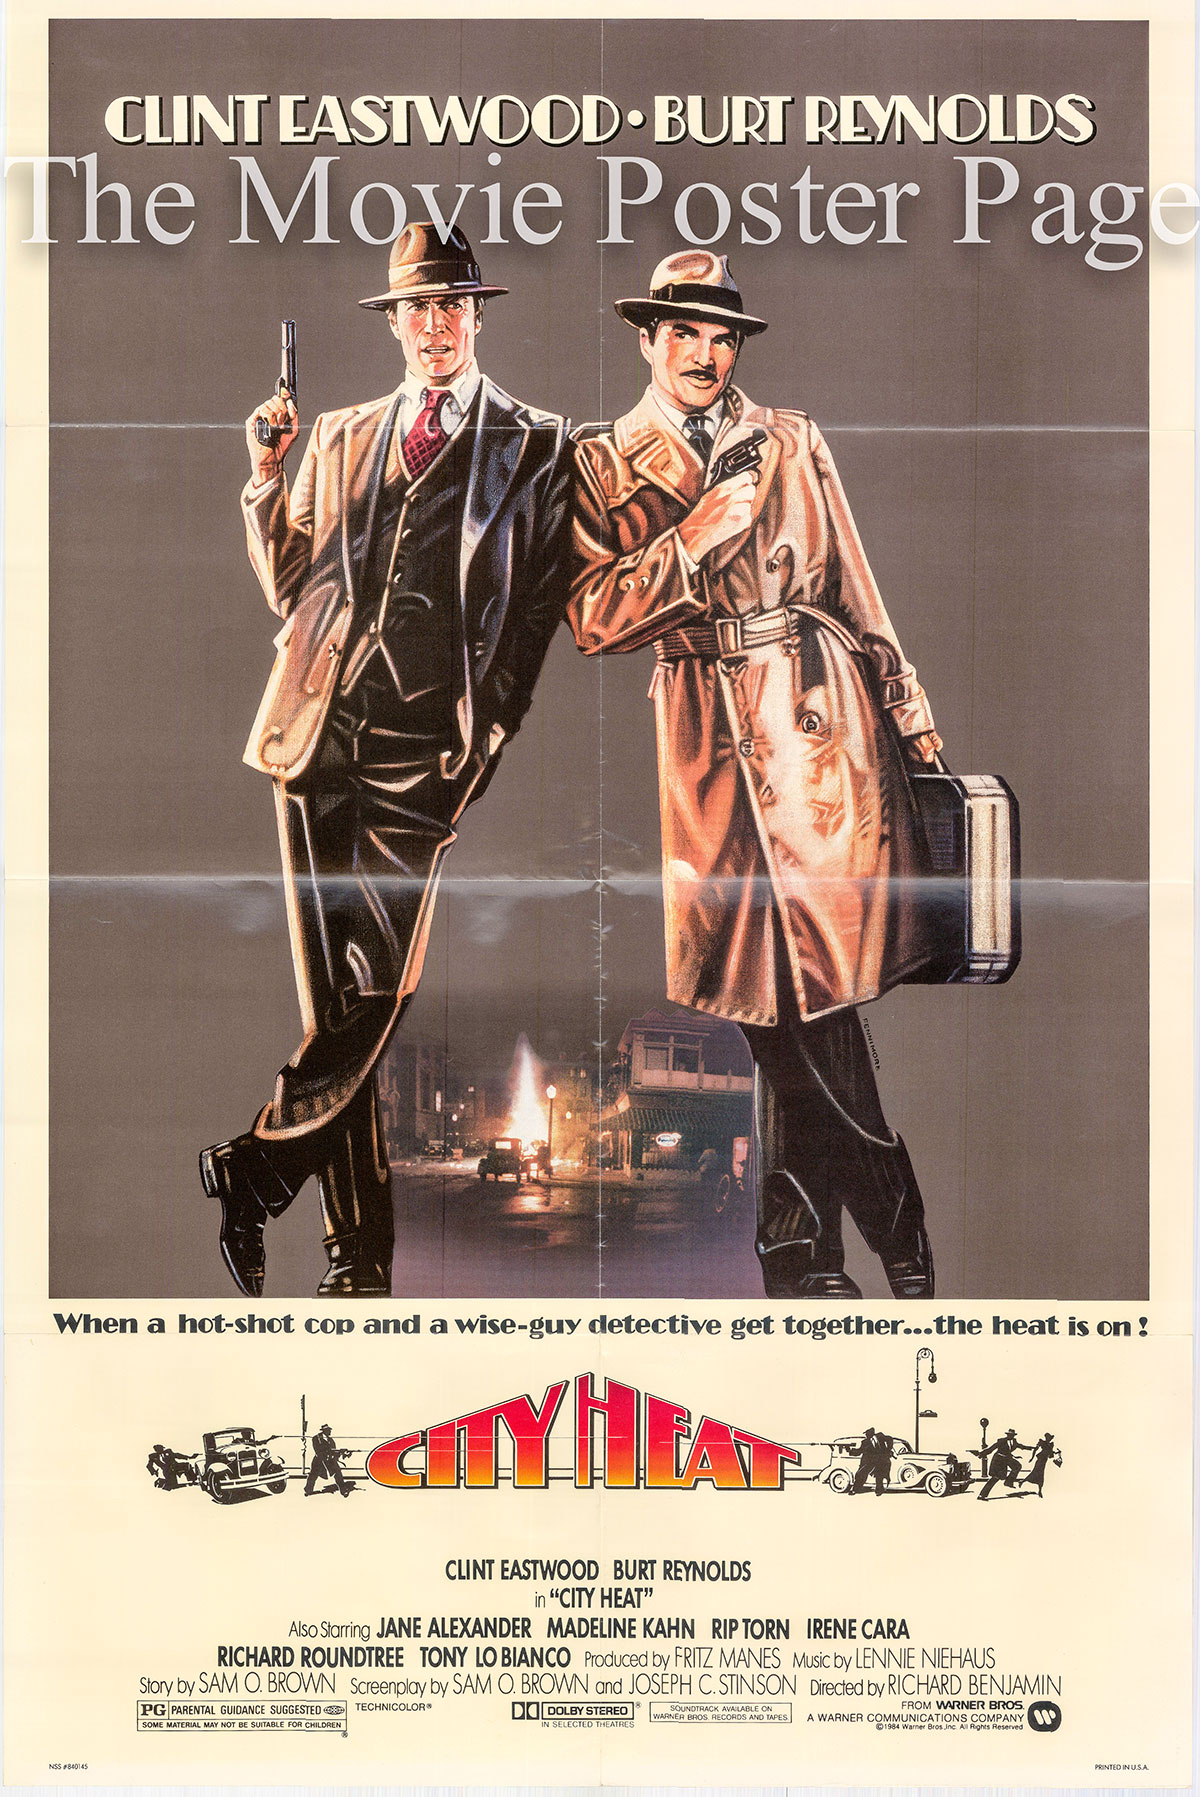 Pictured is a US one-sheet poster for the 1984 Richard Benjamin film City Heat starring Clint Eastwood.